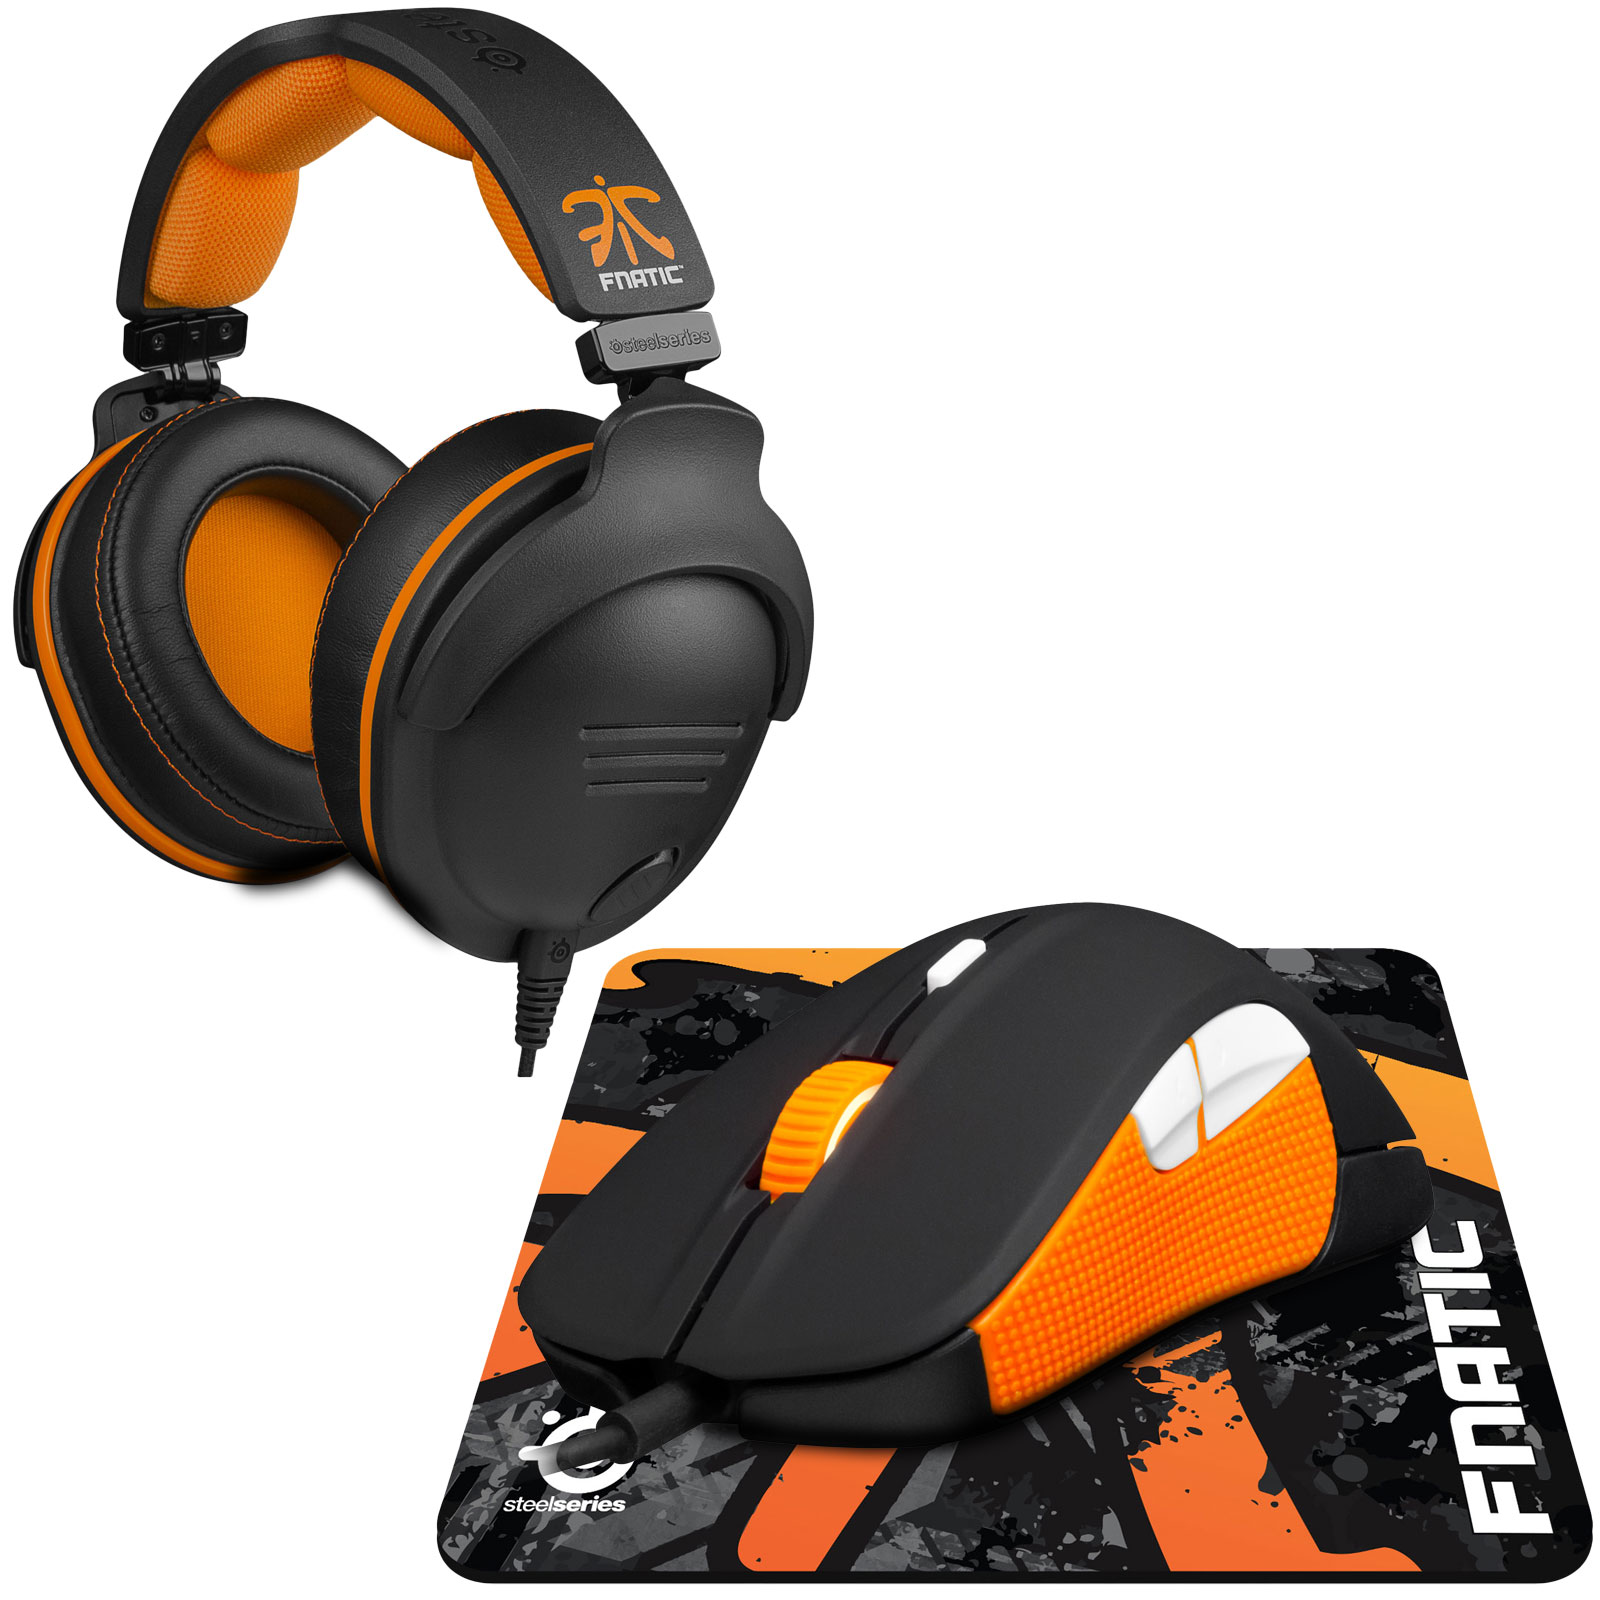 Fauteuil Pc Steelseries Fnatic Pro Gaming Pack - Micro-casque Gamer